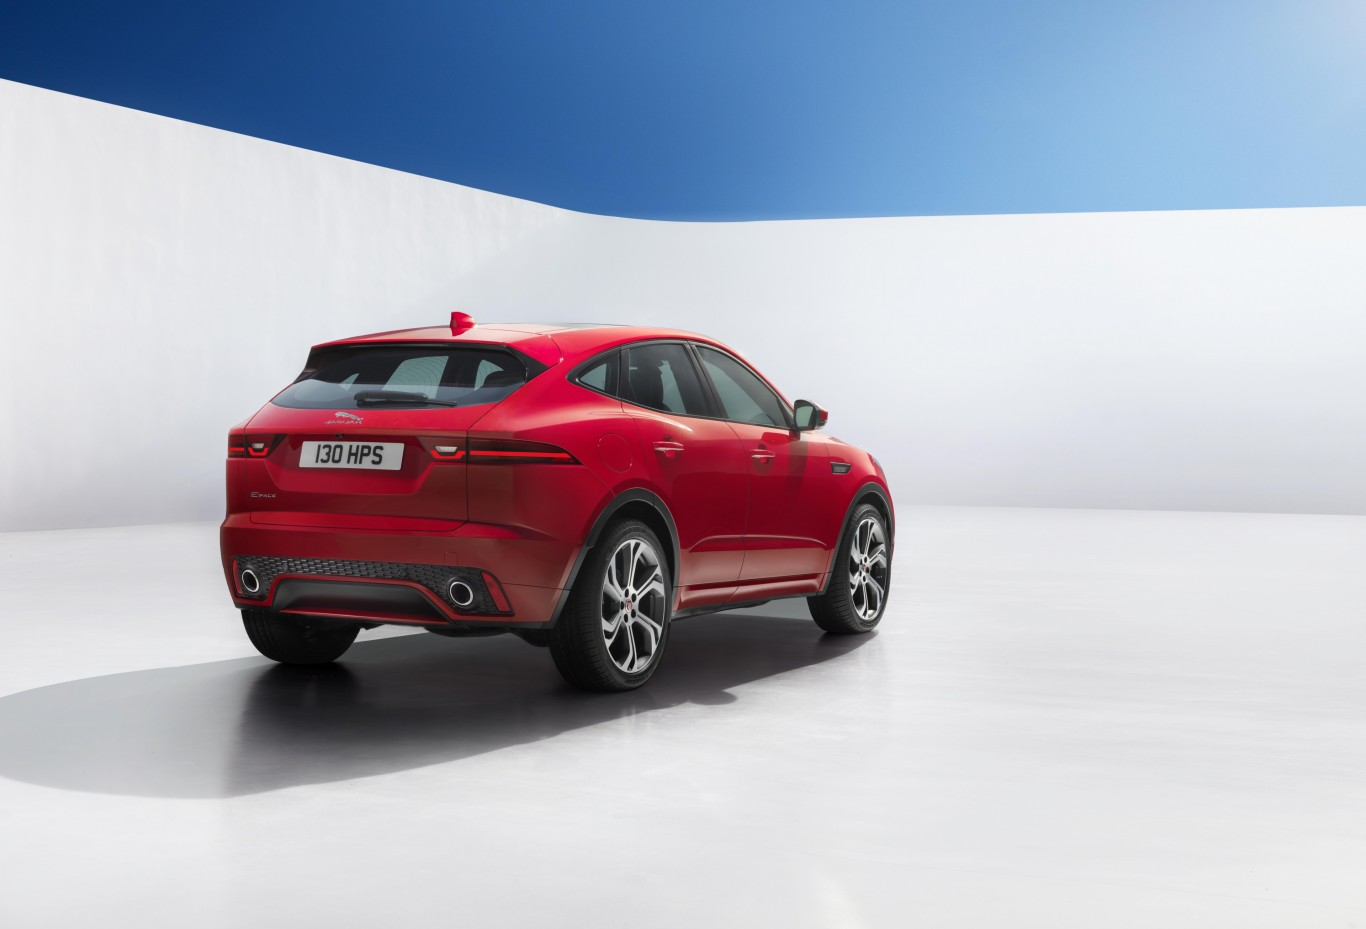 Jaguar E-Pace: Jag's Cub is an adorable compact SUV disruptor